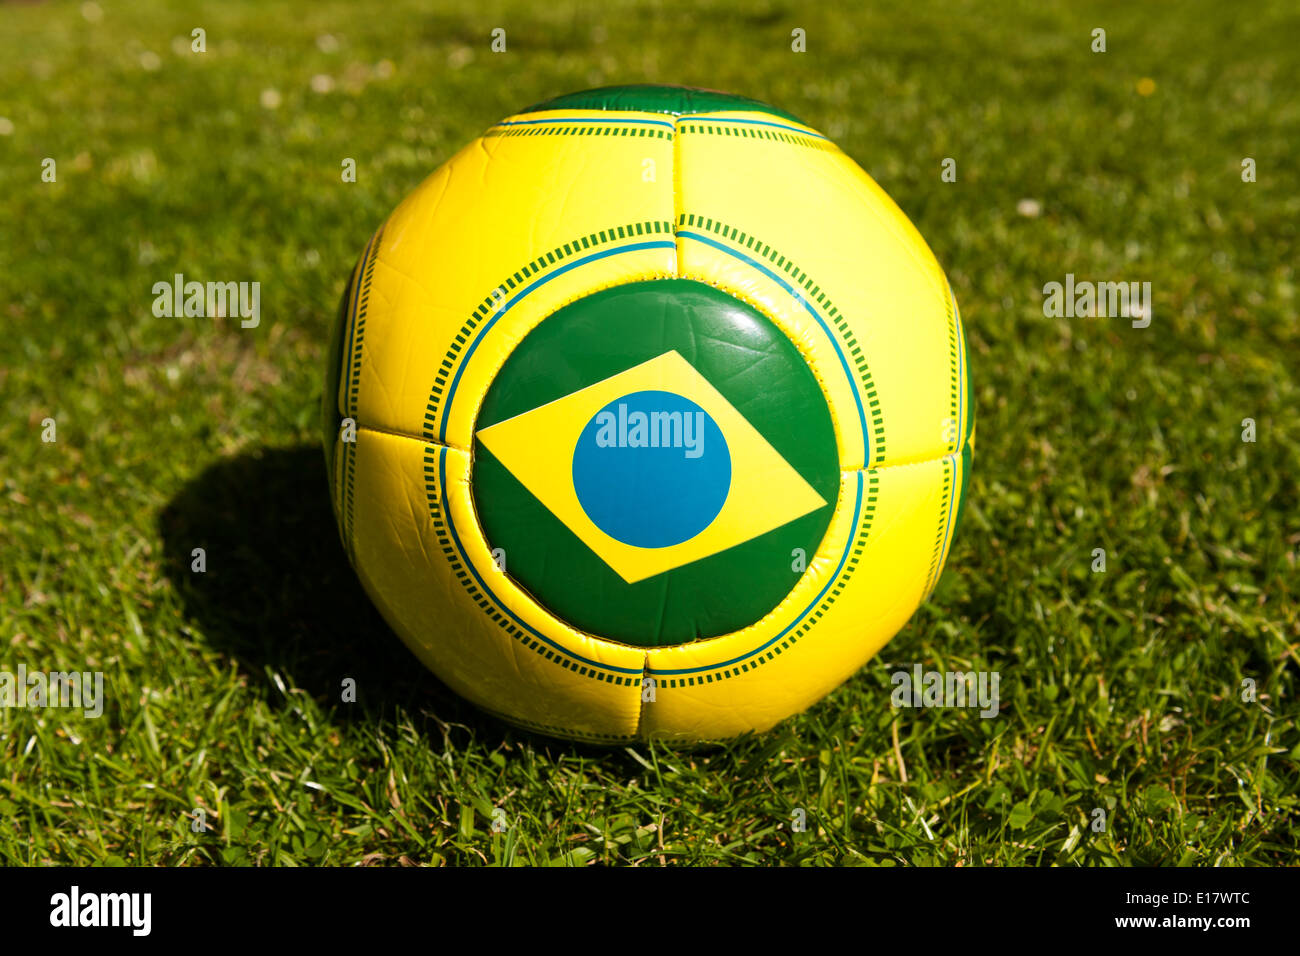 Brazilian football on grass for for Brazil World Cup 2014. Stock Photo